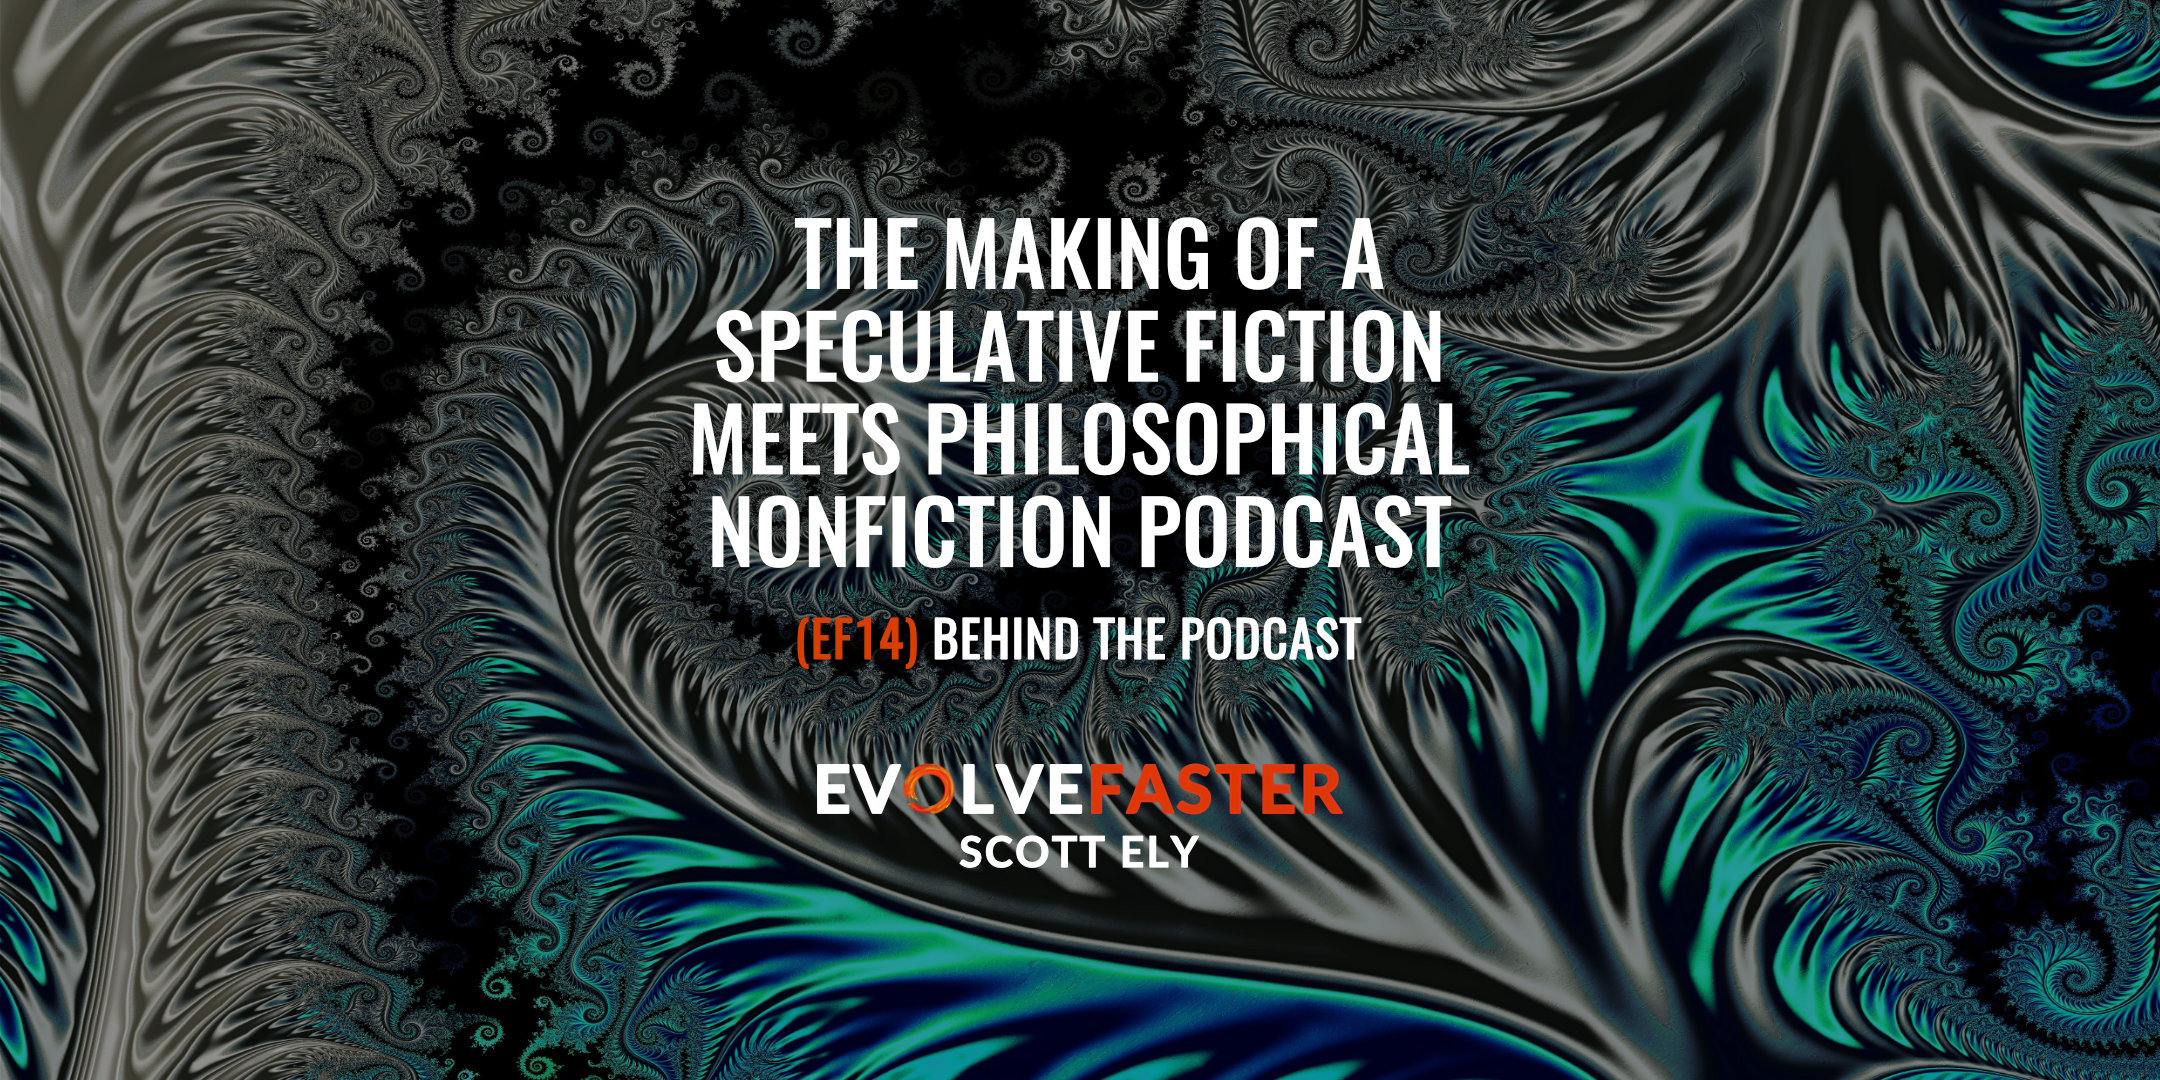 (EF14) BTP-AMA: Behind the Evolve Faster Podcast - The Making of a Speculative Fiction Meets Philosophical Nonfiction Podcast